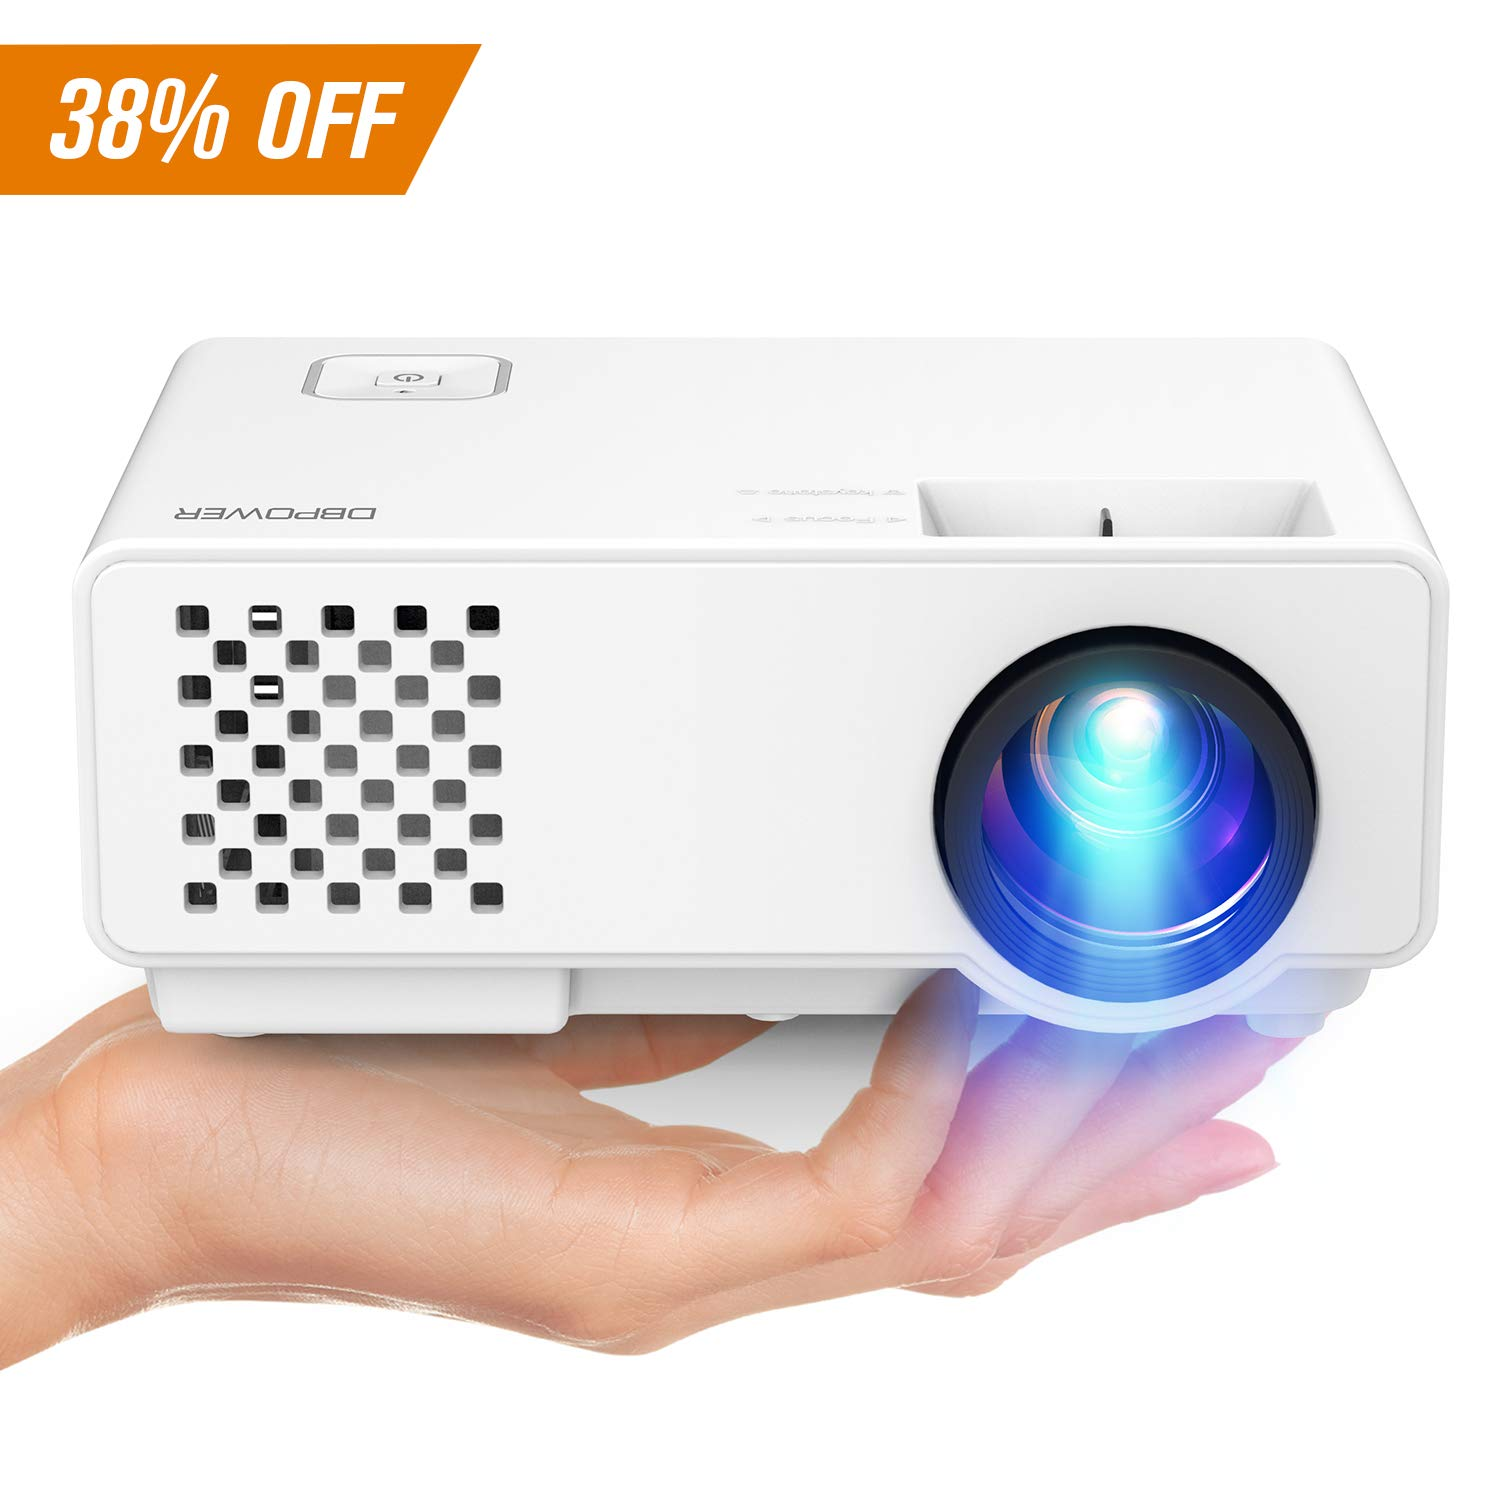 Projector, 2018 Upgraded DBPOWER RD-810X Mini Video Projector, Multimedia Home Theater Video Projector Supporting 1080P, HDMI, USB, VGA, AV for Home Cinema, TVs, Laptops, Games, Smartphones